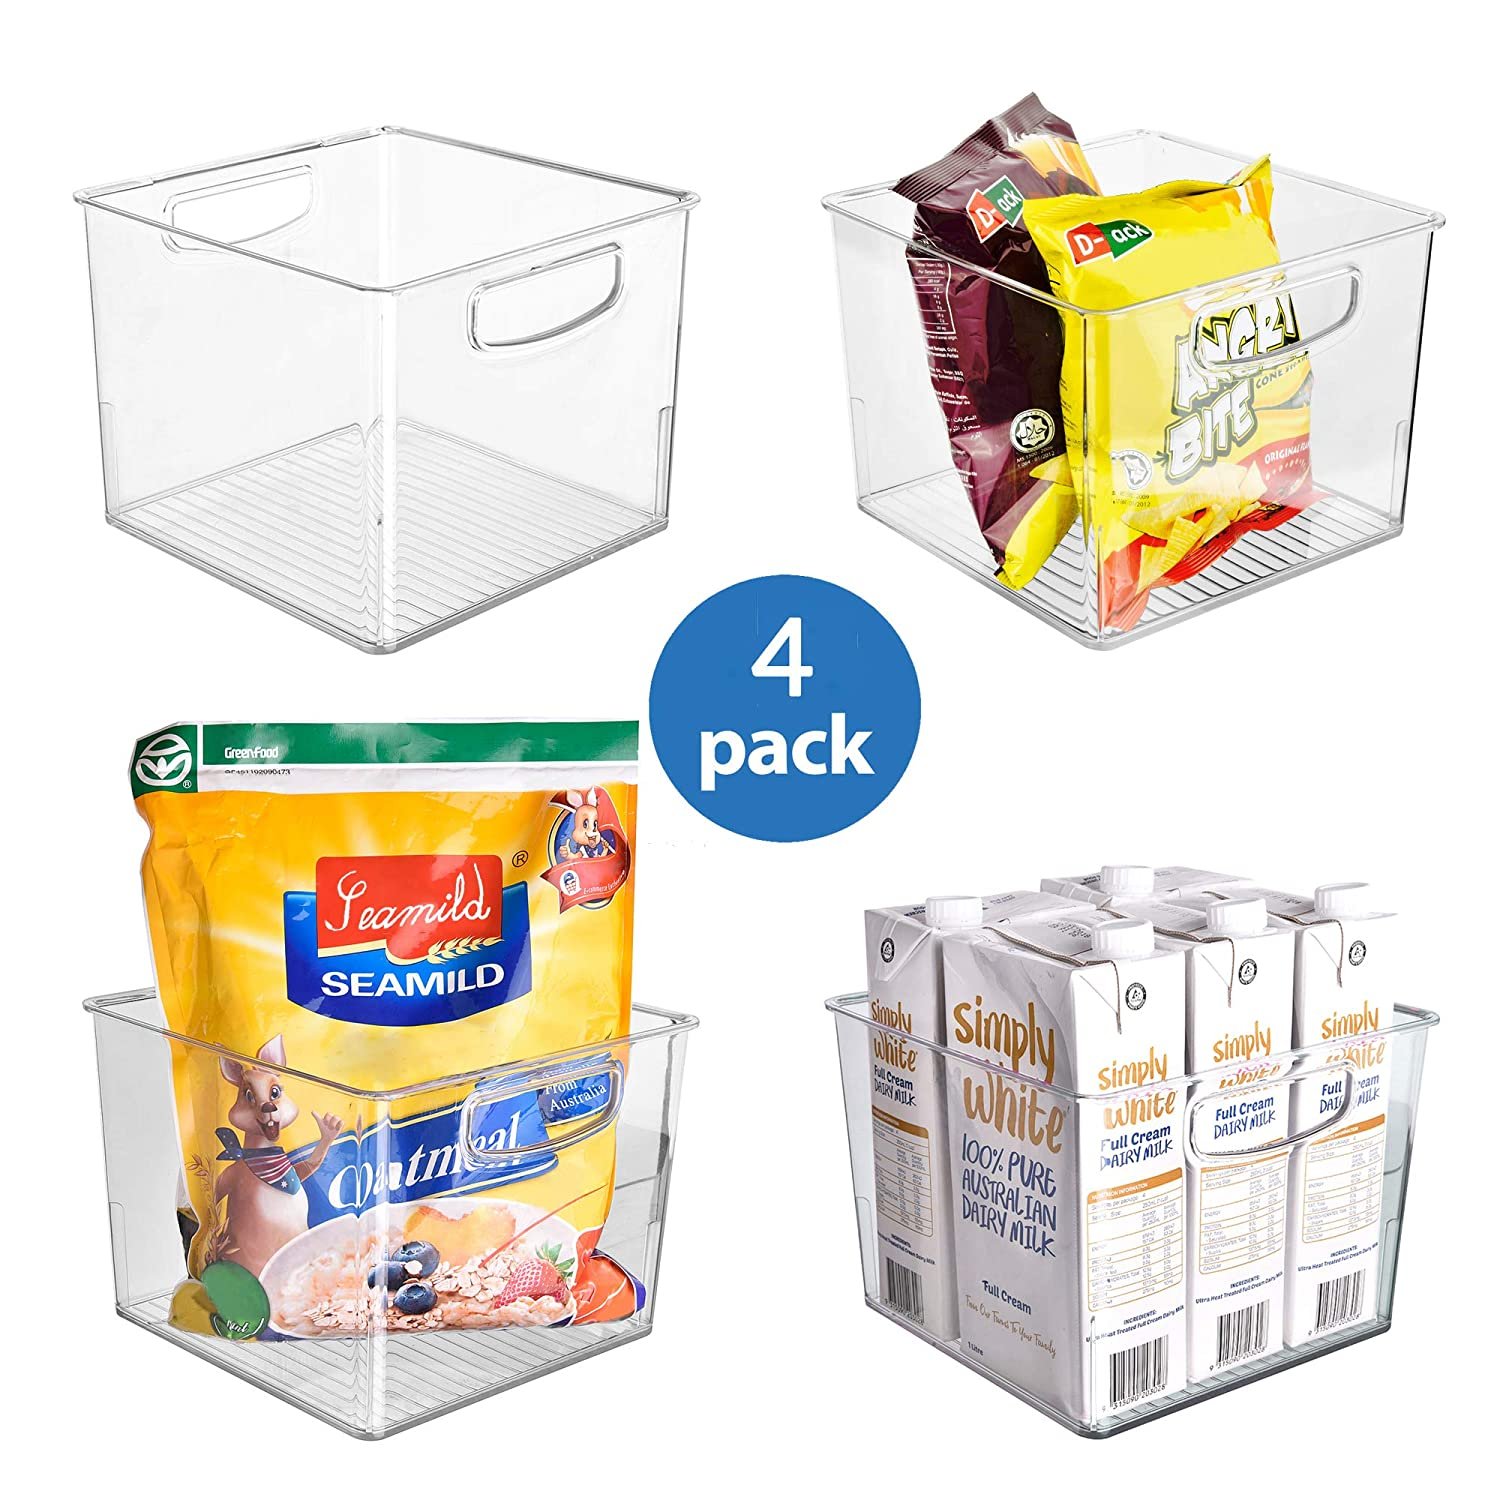 Ambergron Organizer Storage Bins for Kitchen Pantry Cabinet Refrigerator Plastic Food Organizer with Handles, Clear Container, BPA-Free, Pack of 4